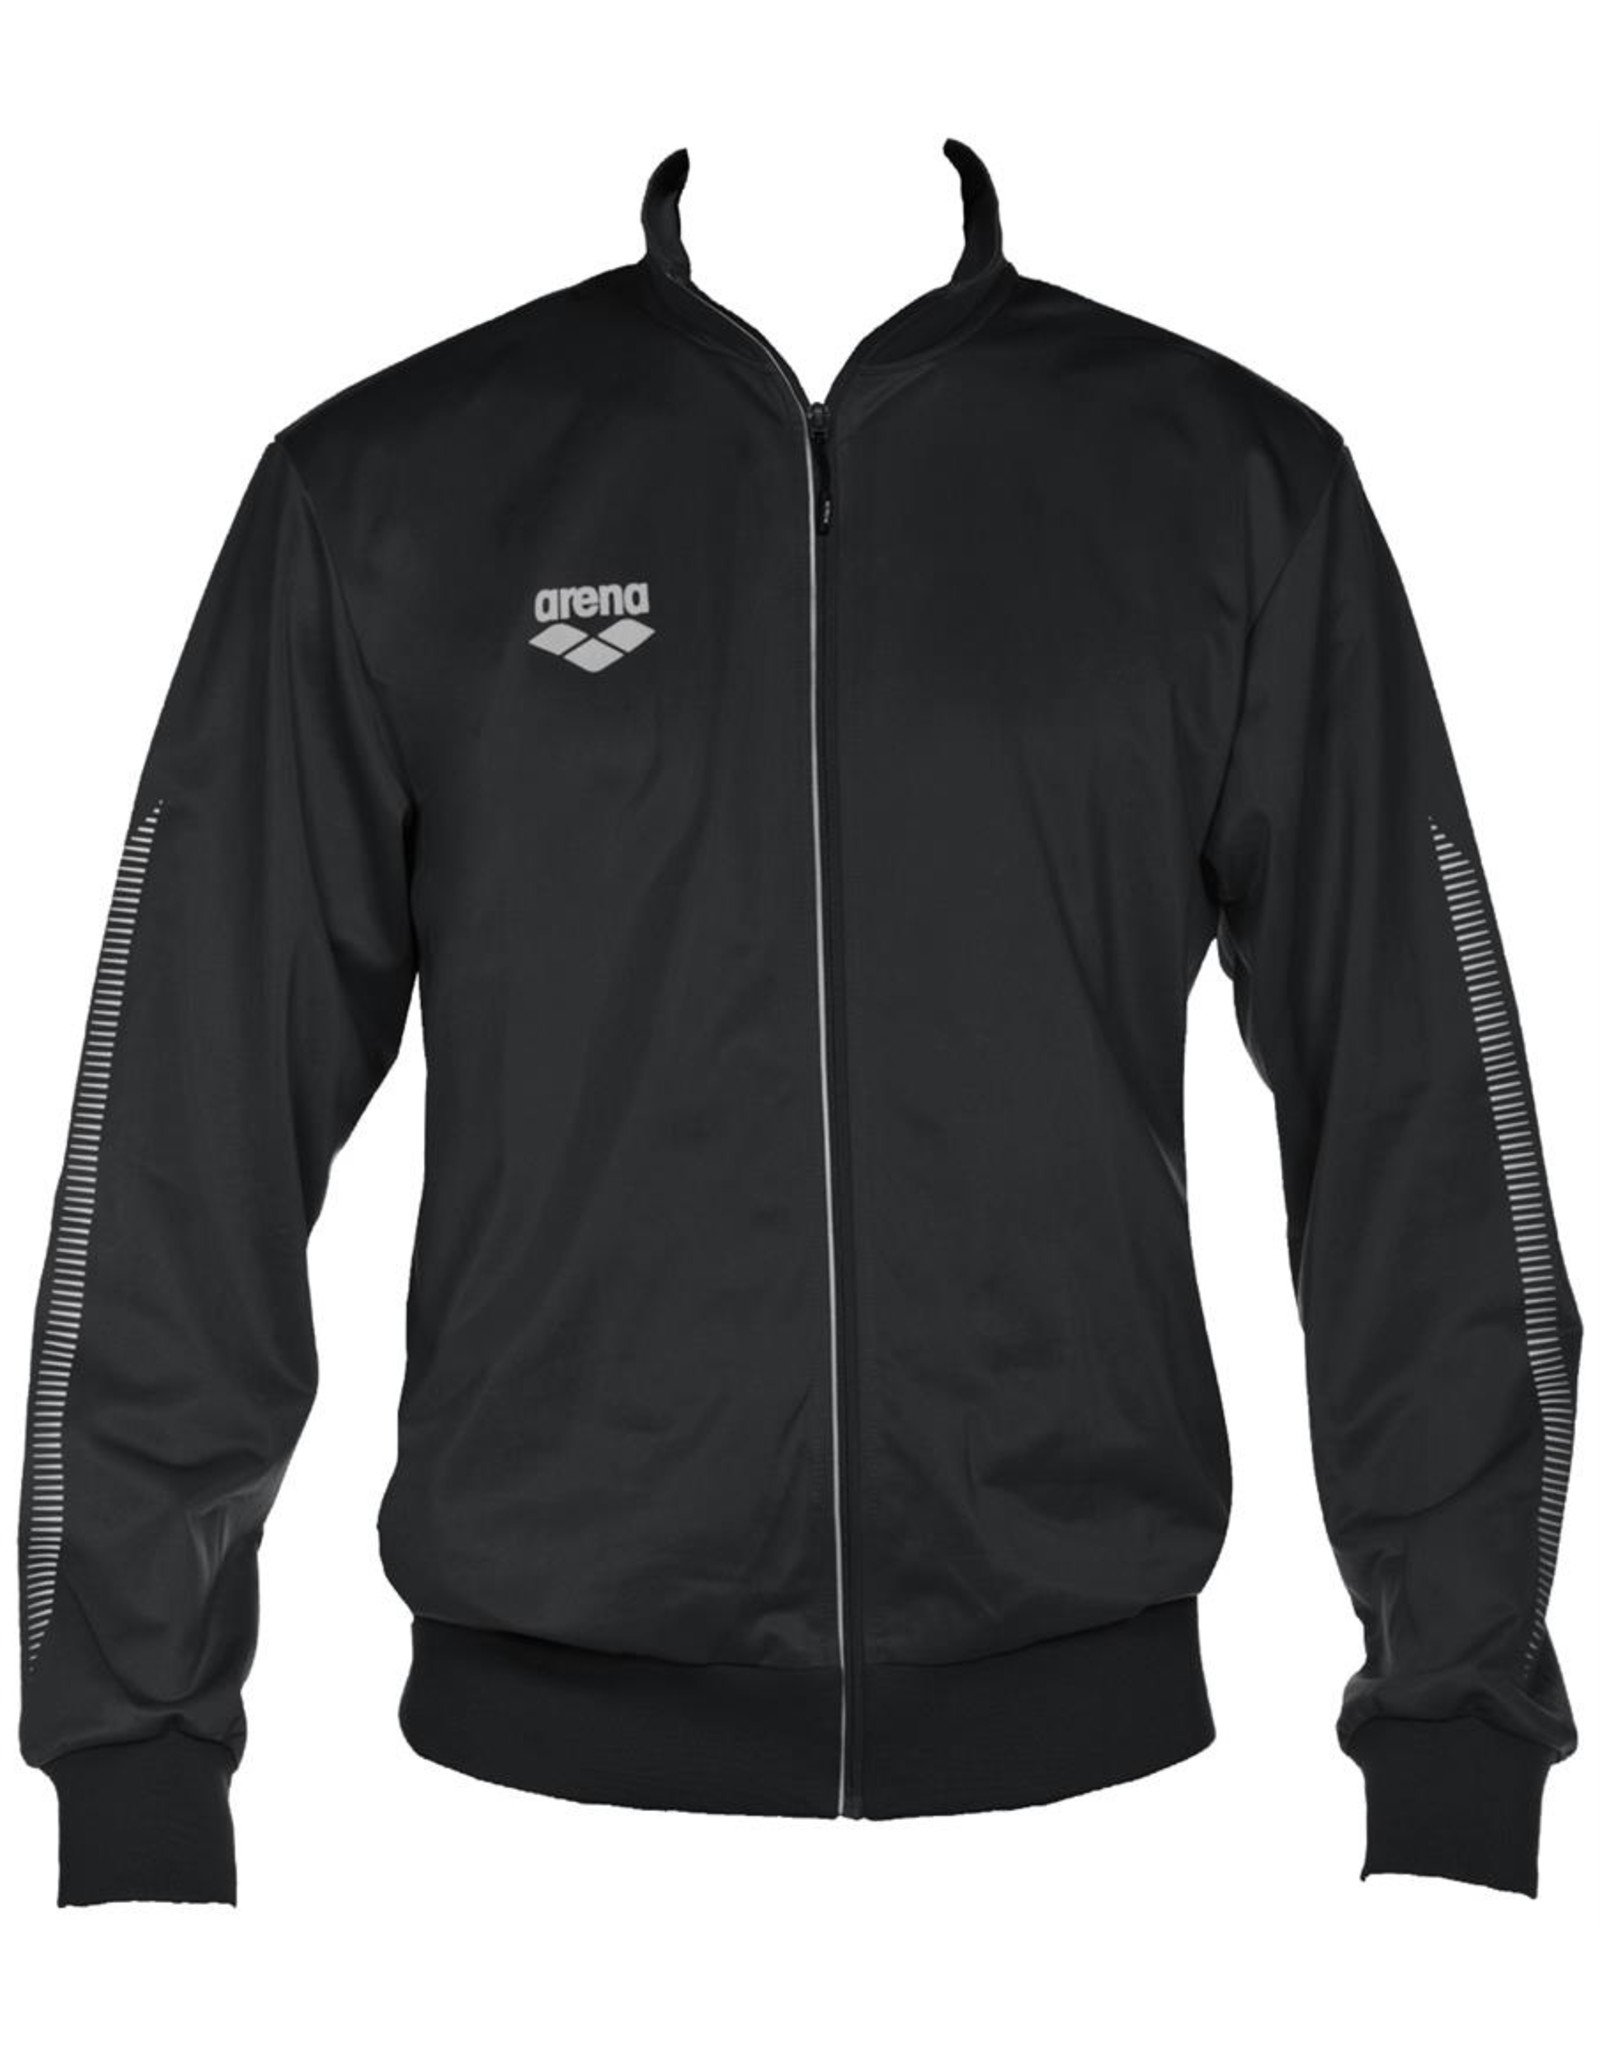 ARENA ARENA TL KNITTED POLY JACKET + CCAT LOGO & NAME